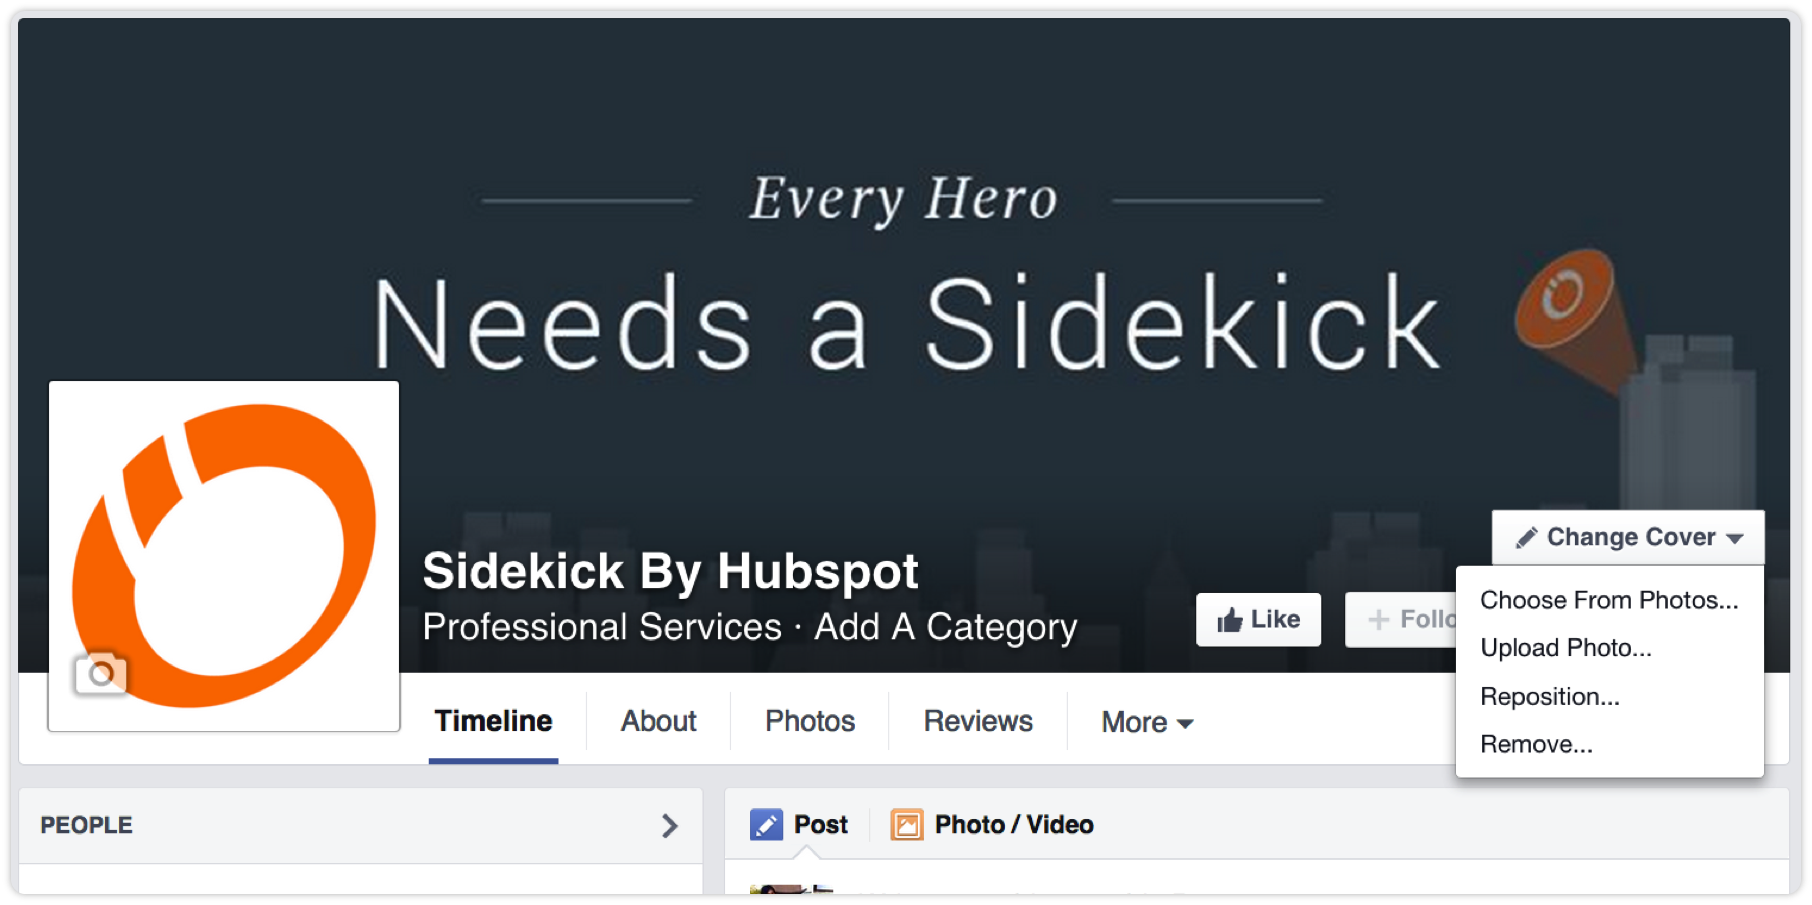 Everyheroneedssidekickbyhubspotfacebookcover How To Create A Facebook  Business Page In 5 Simple Steps [tutorial]